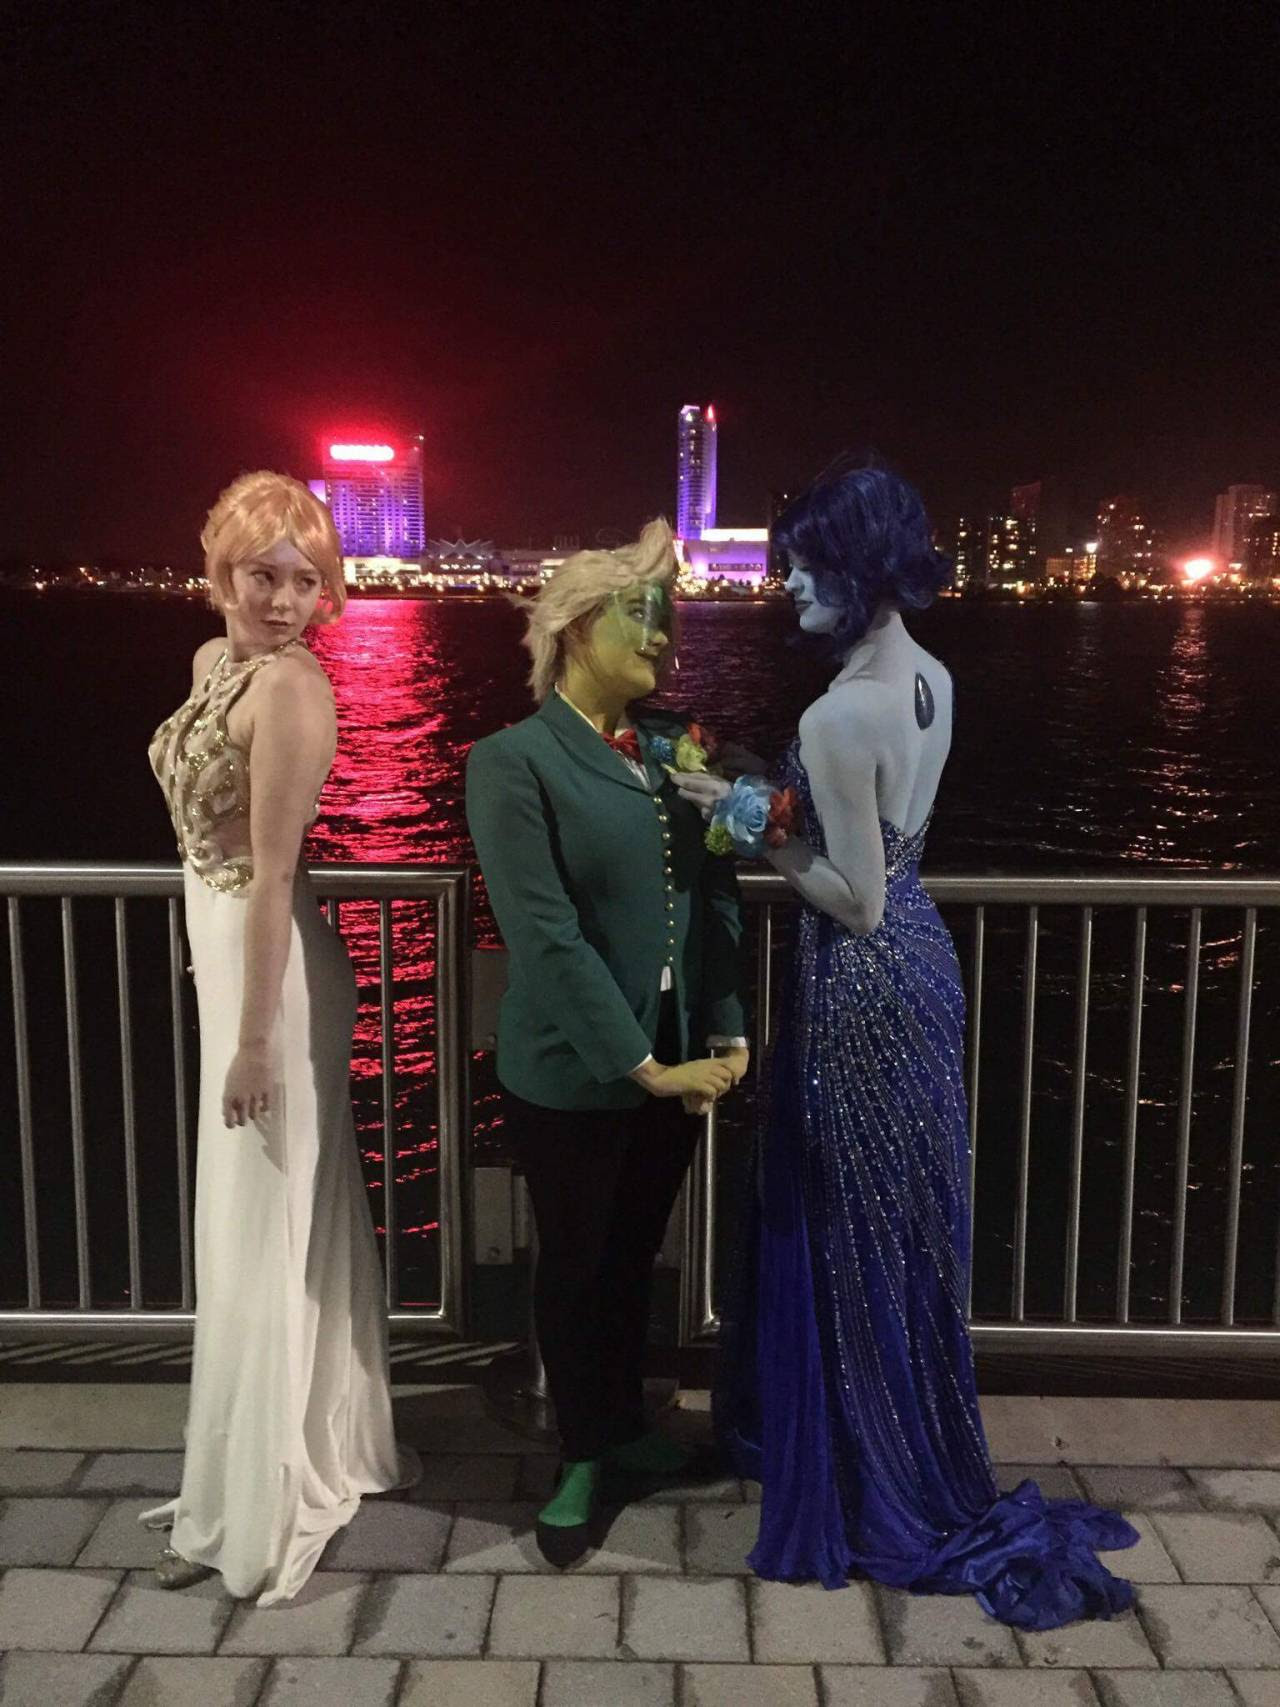 Dapper gems for Youmacon 2016. @yessometimespracticallyperfect as Peridot.